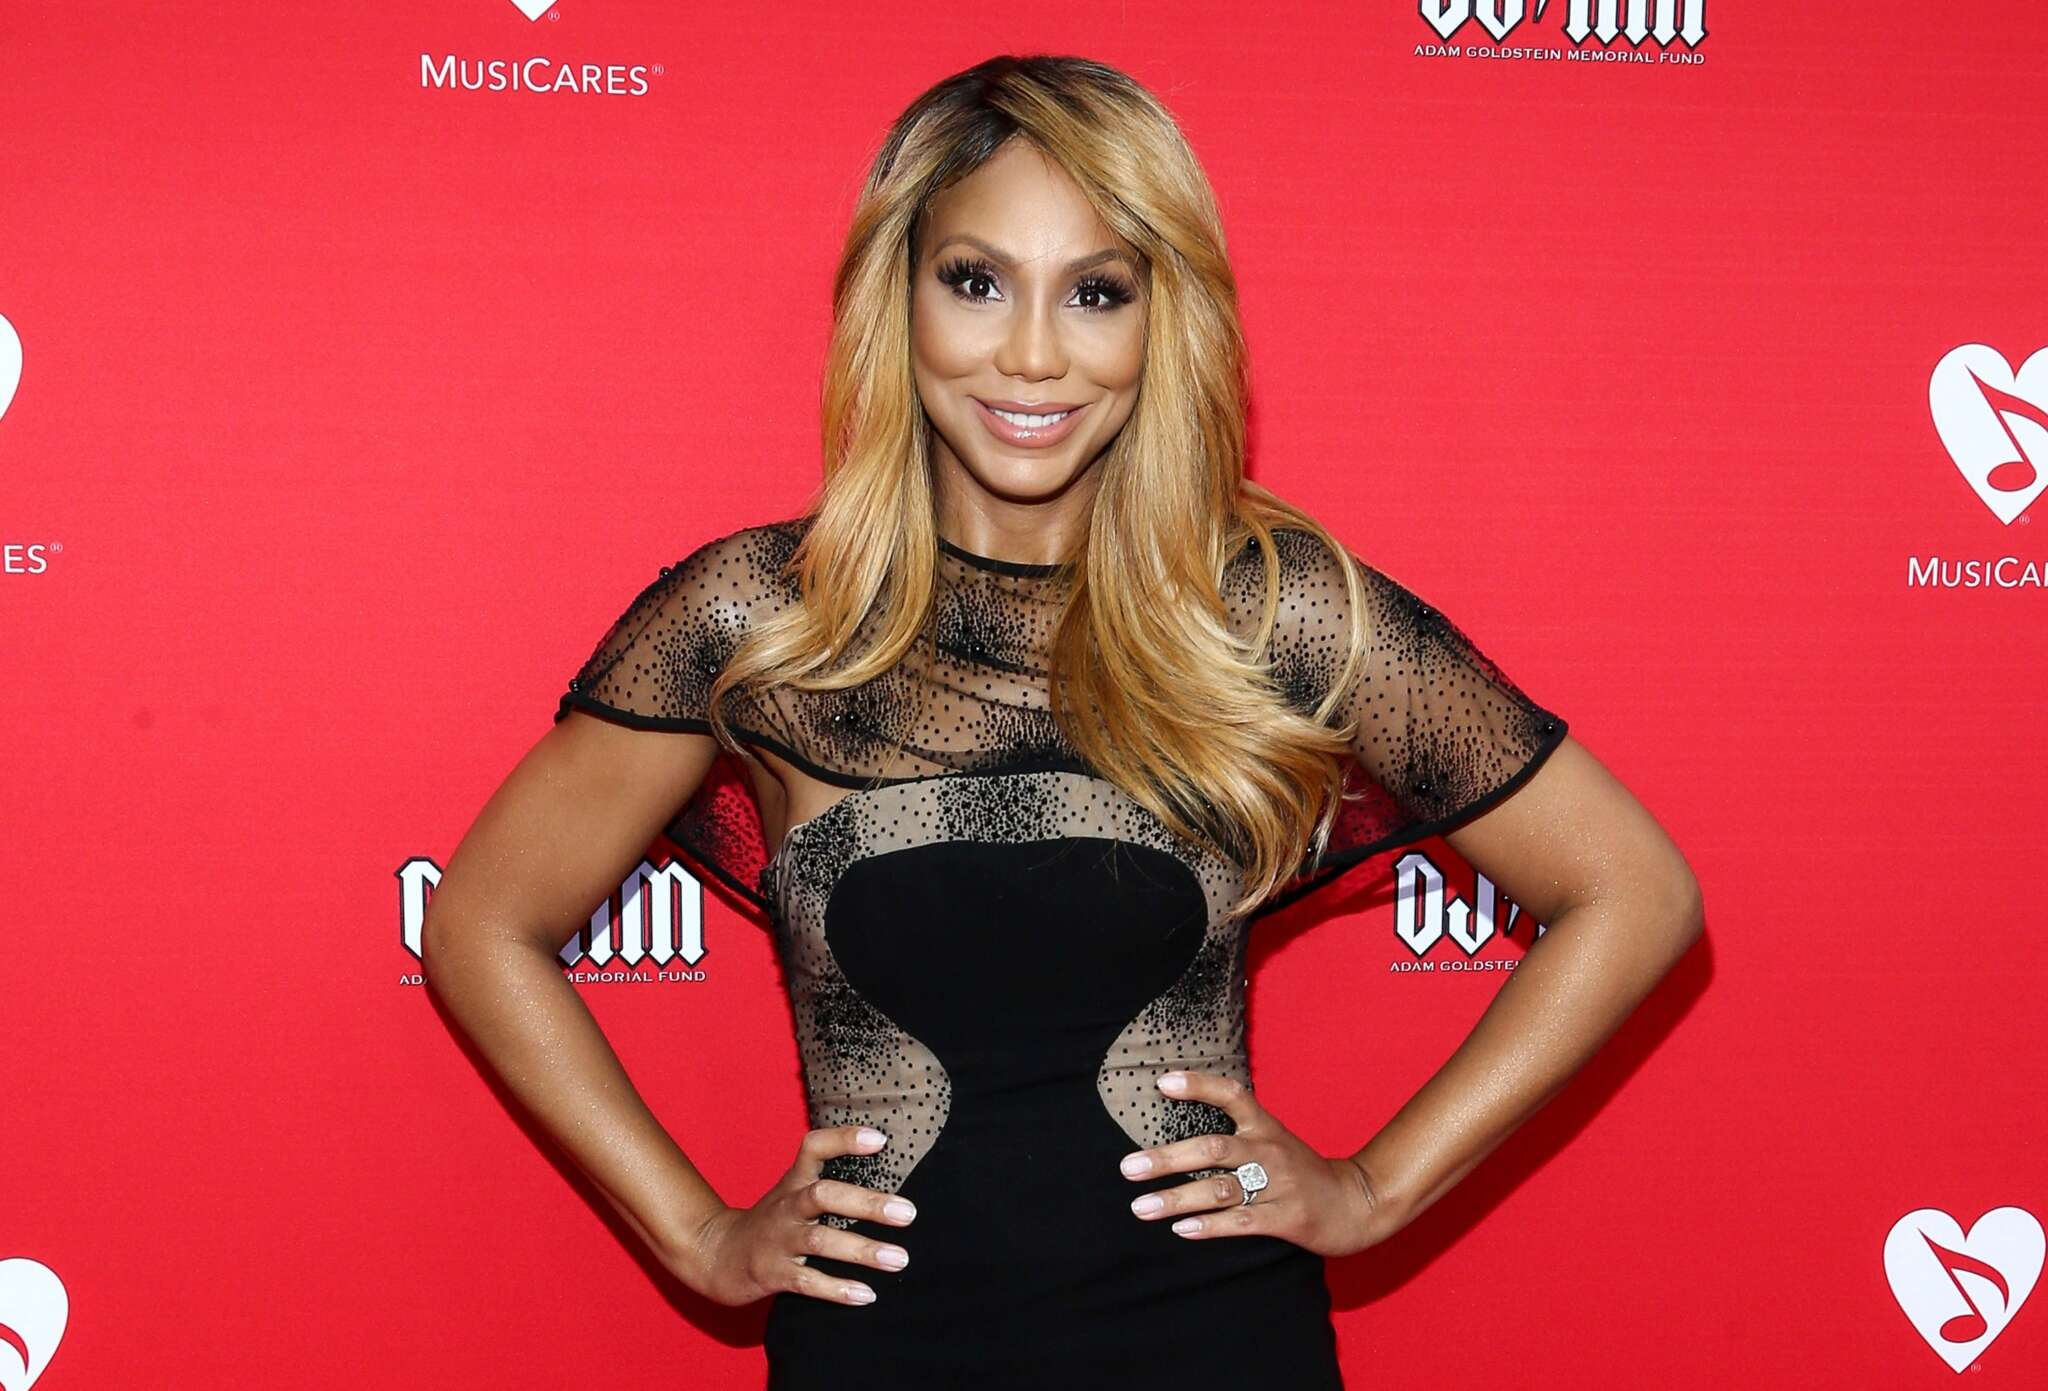 tamar-braxton-needed-a-long-time-to-find-her-smile-check-out-her-emotional-message